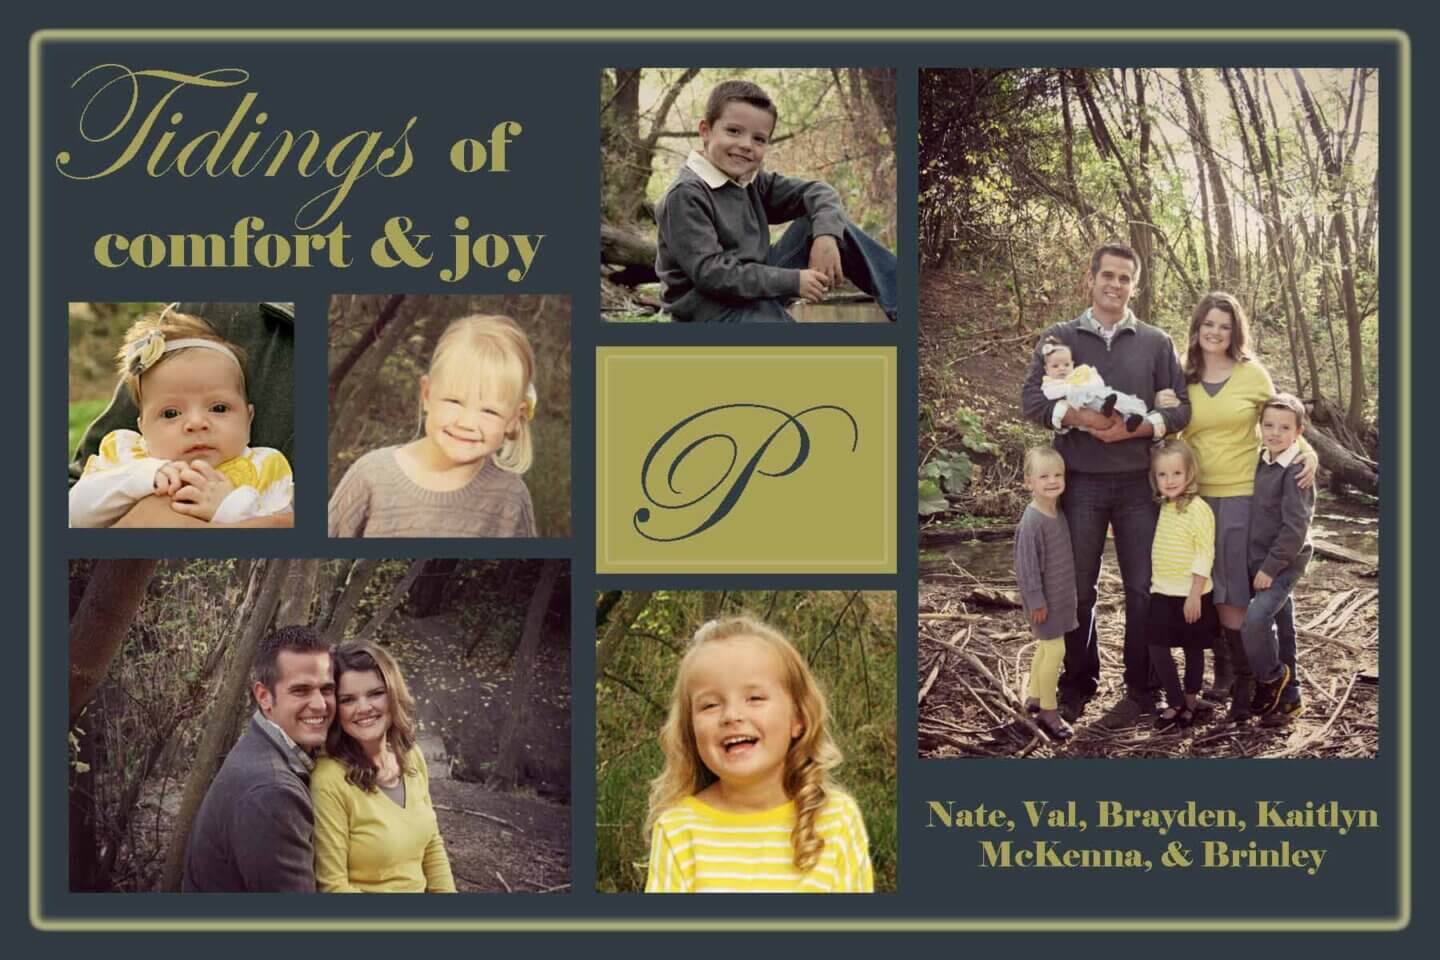 2012 Plowman Family Christmas Card